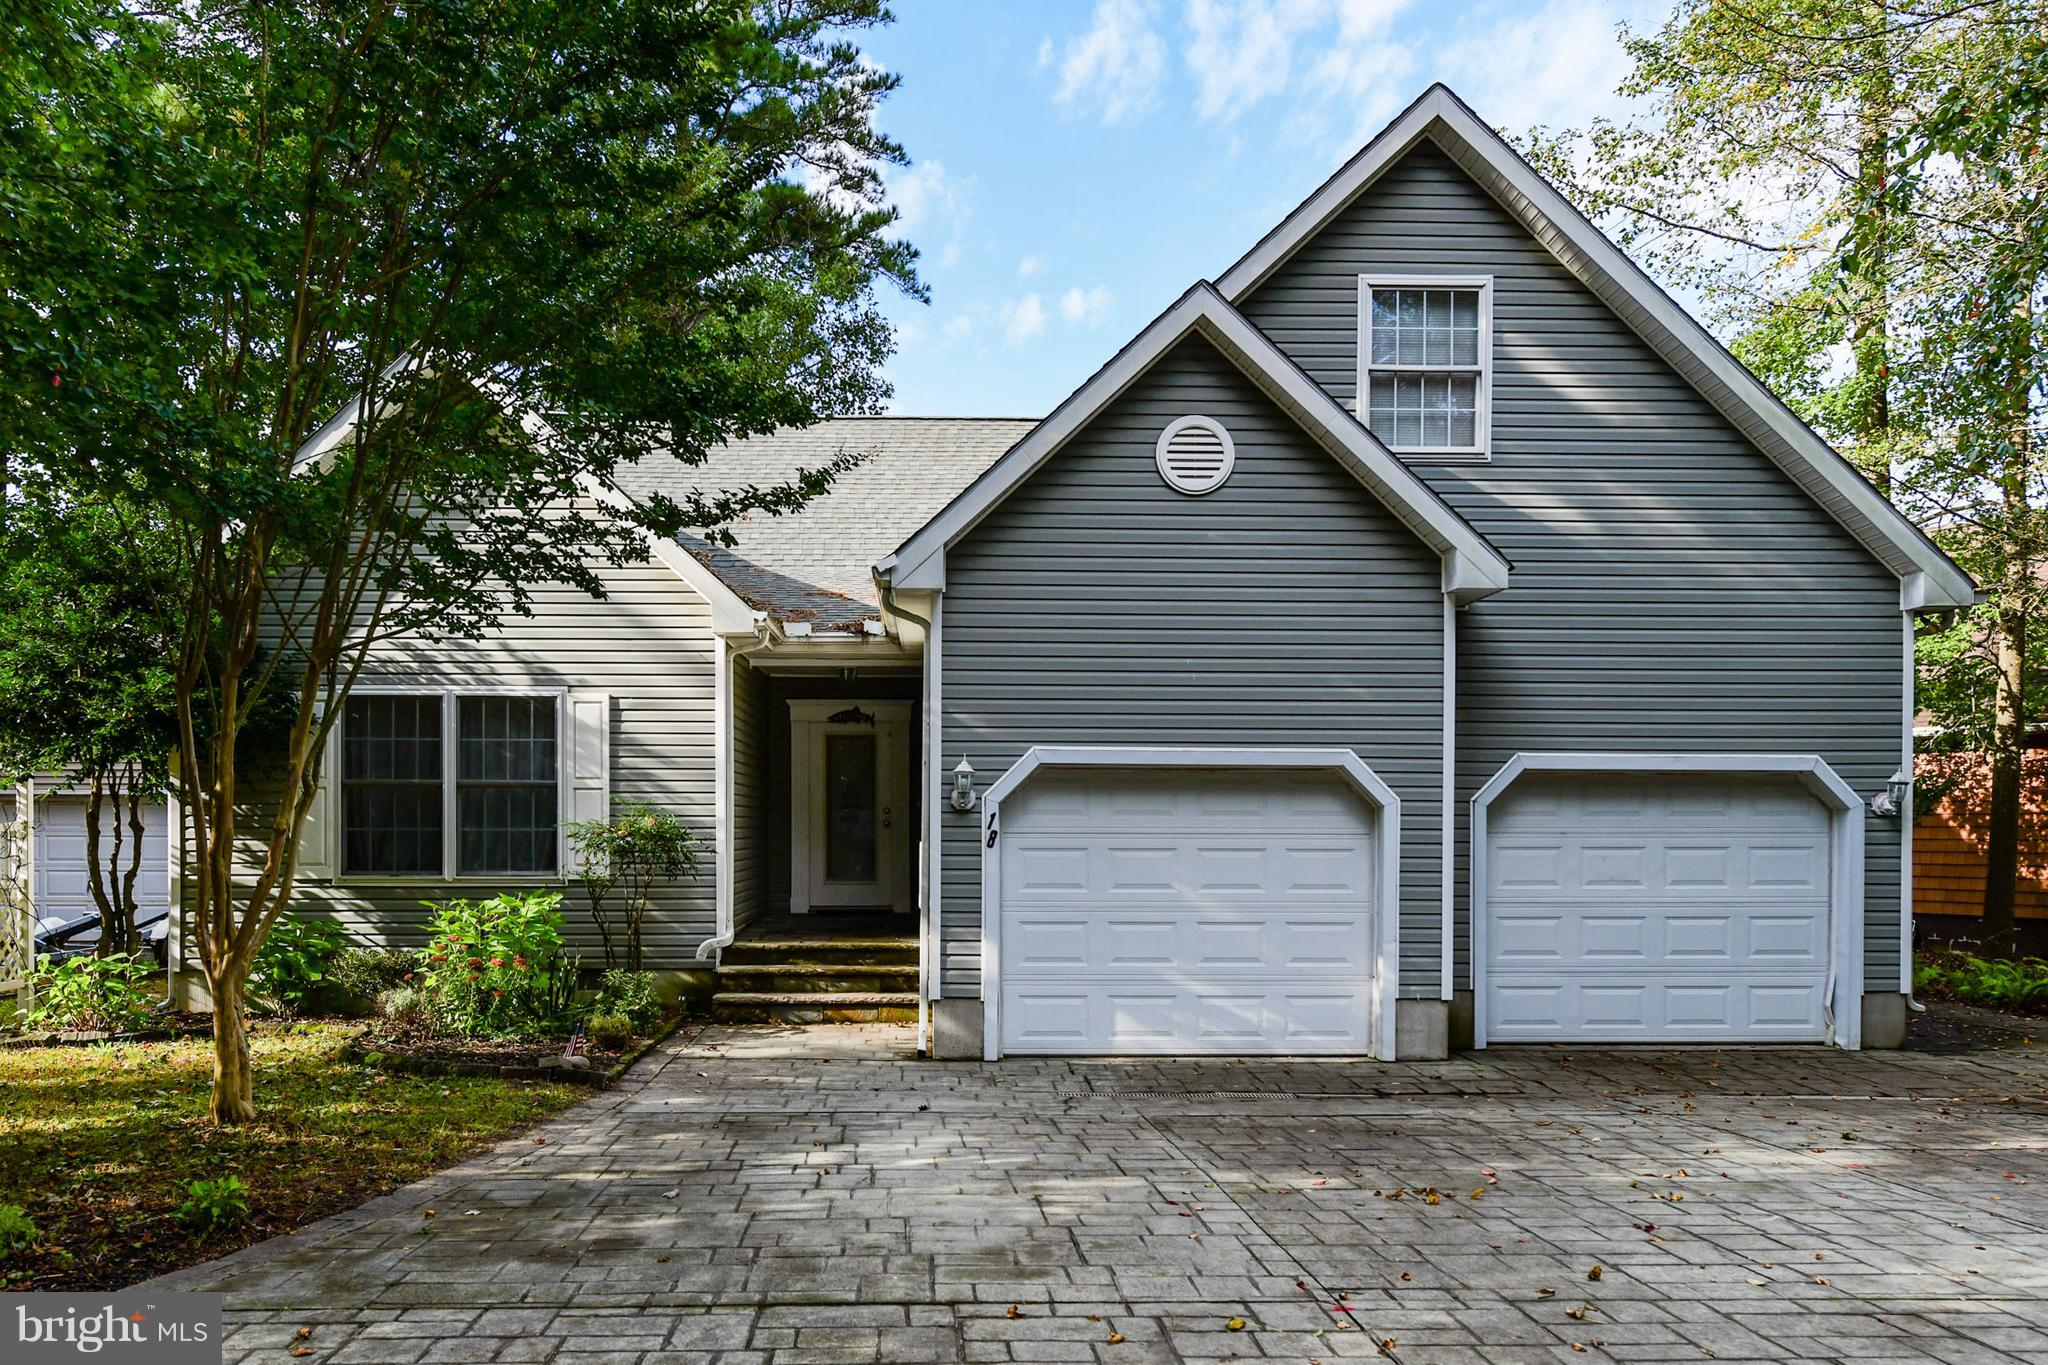 18 SEABREEZE ROAD, OCEAN PINES, MD 21811